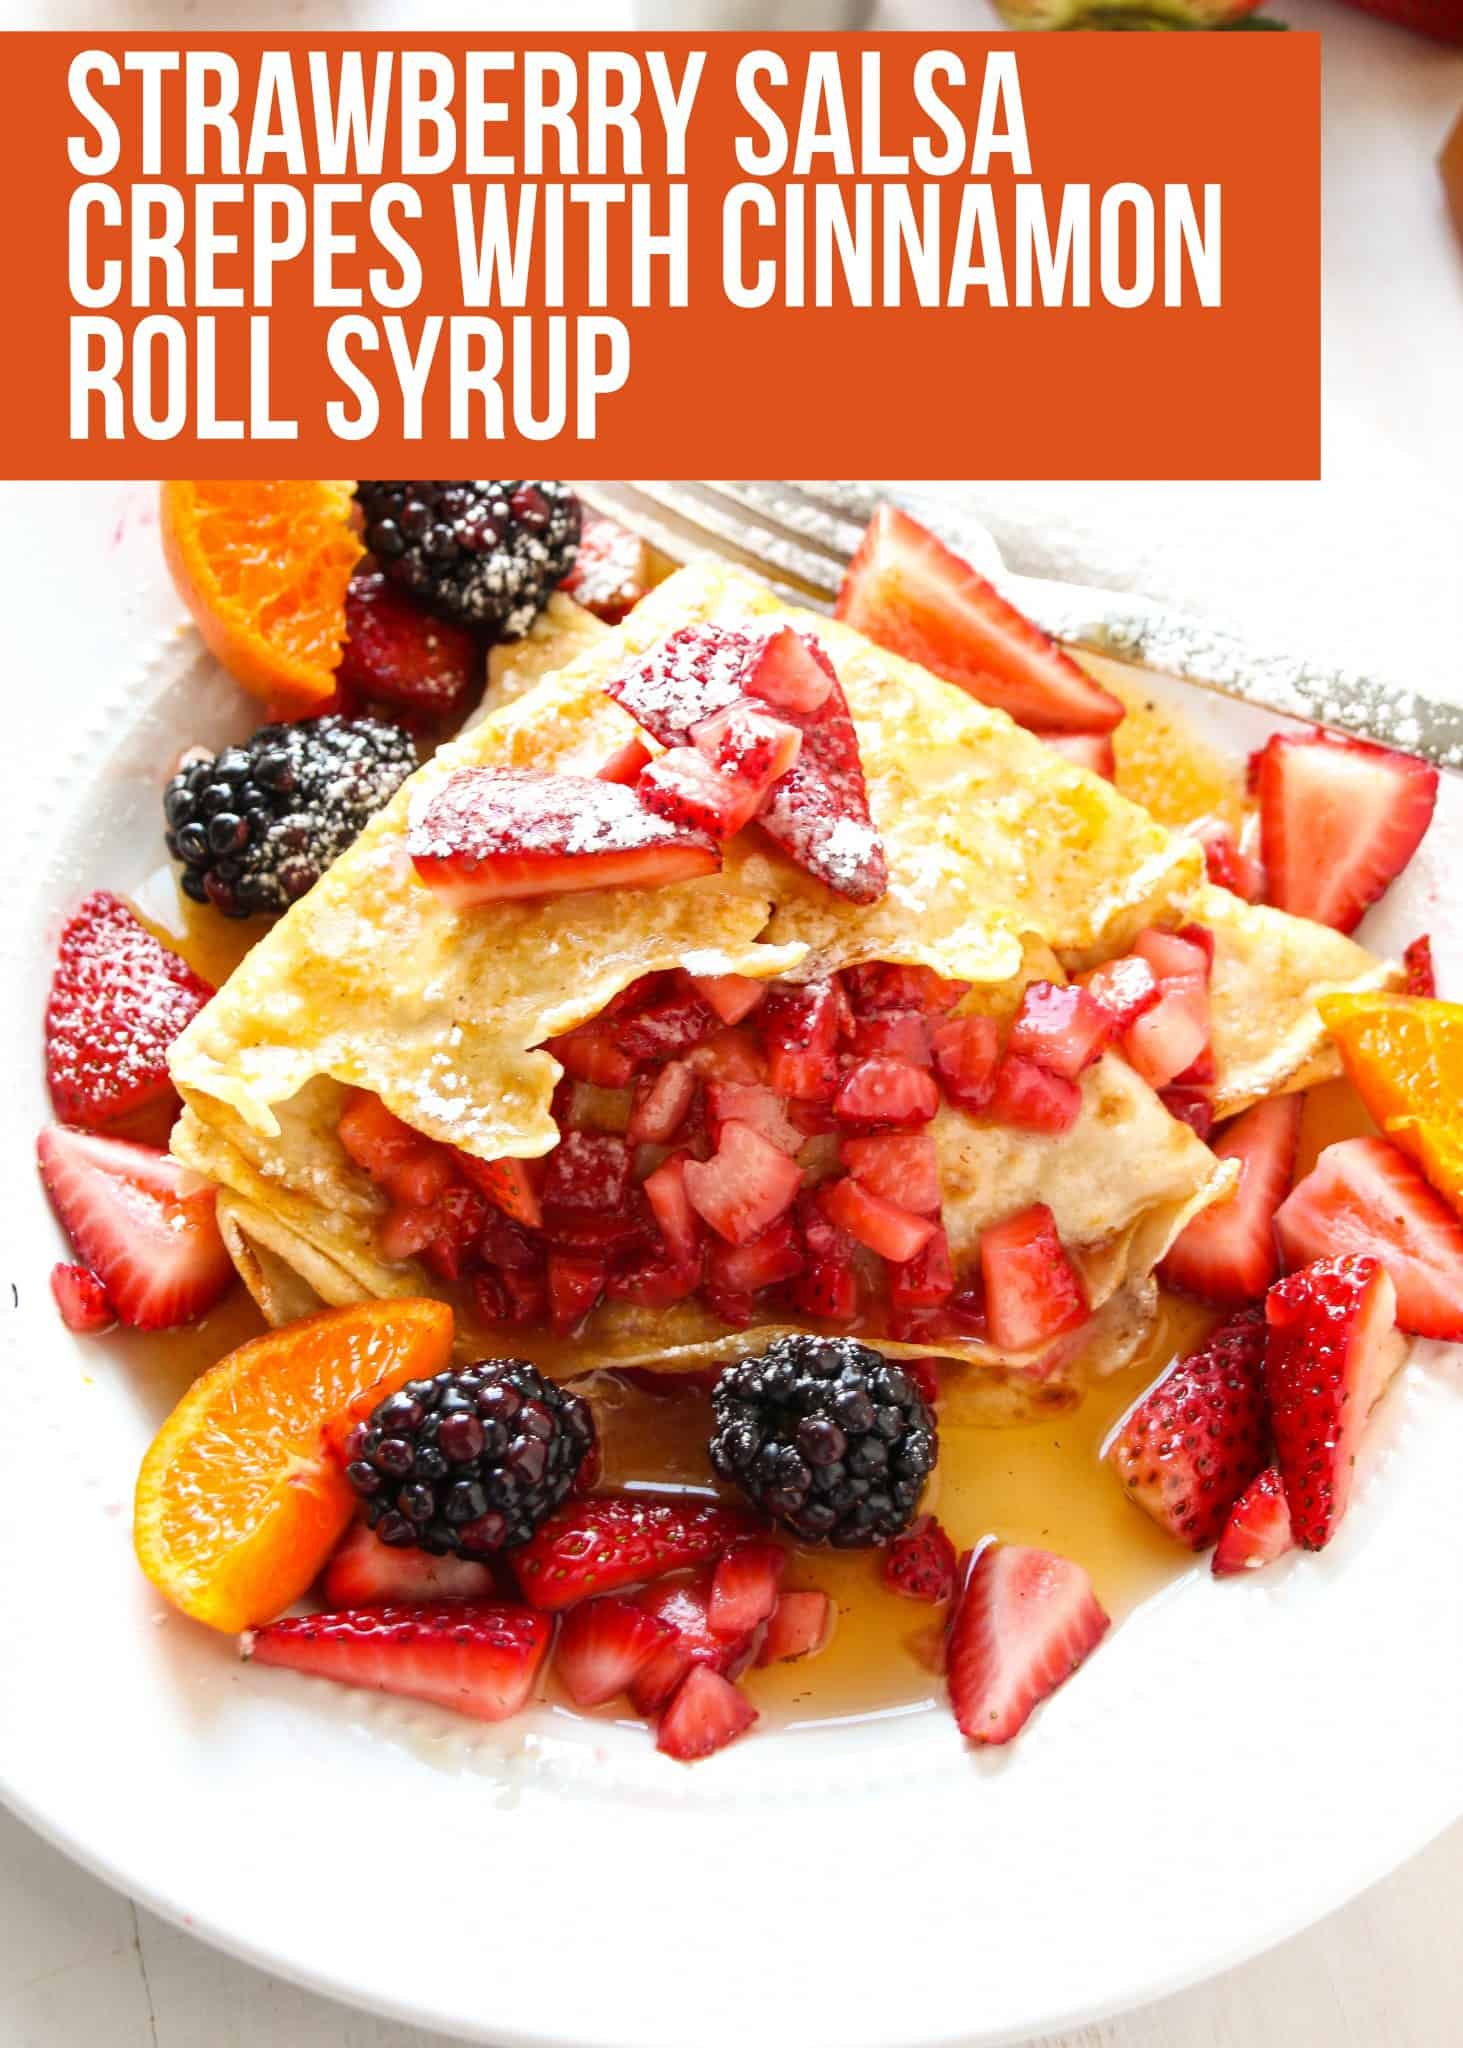 ... crepes. They're absolutely amazing stuffed with strawberry salsa and